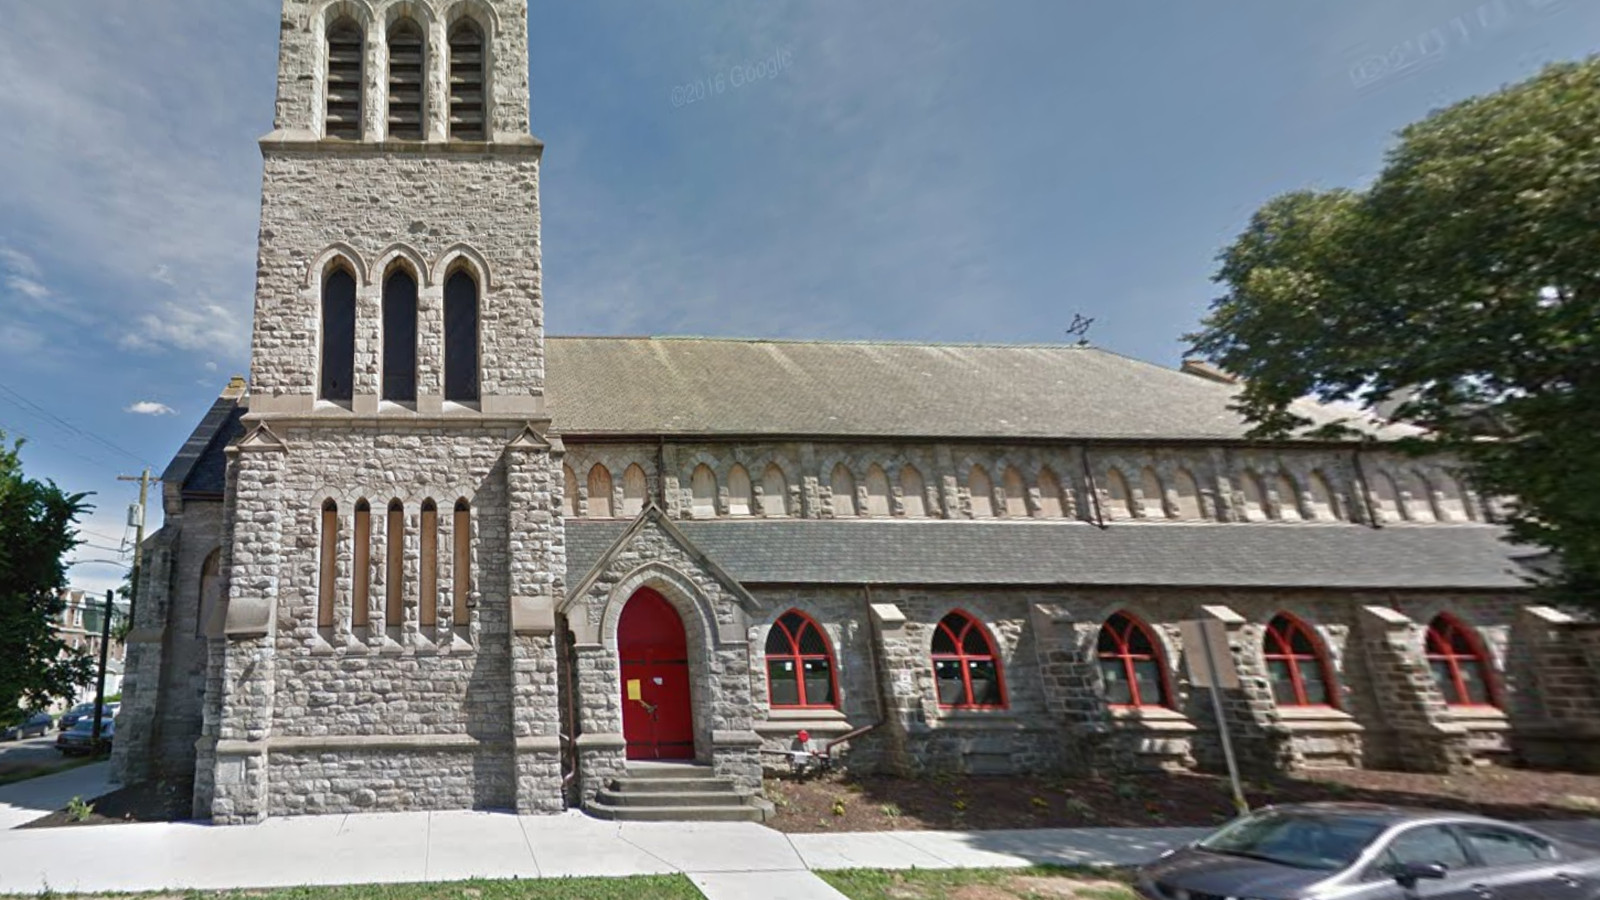 21 Apartments Planned For Frank Furness Church In West